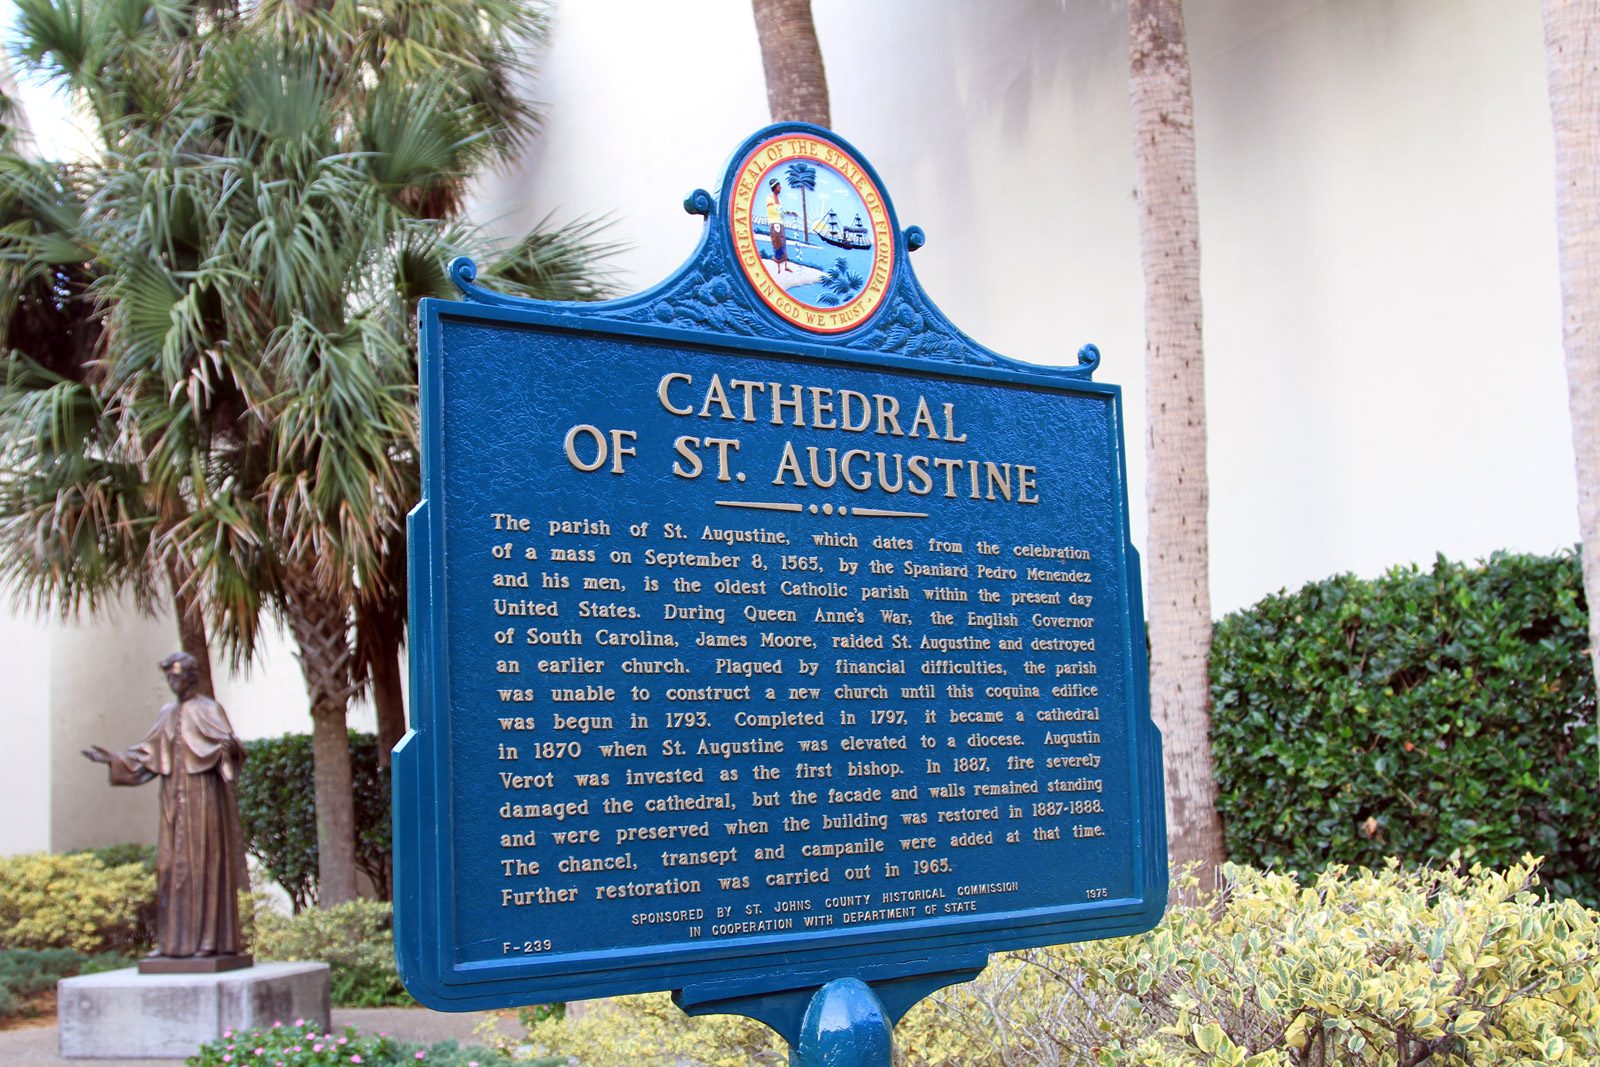 a history of catholic religion in saint augustine florida The cathedral basilica of st augustine is a historic cathedral in st augustine, florida, and the seat of the catholic bishop of st augustine it is located at cathedral street between charlotte and st george streets constructed over five years, it was designated a us national historic landmark on april 15, 1970 its congregation, established in.